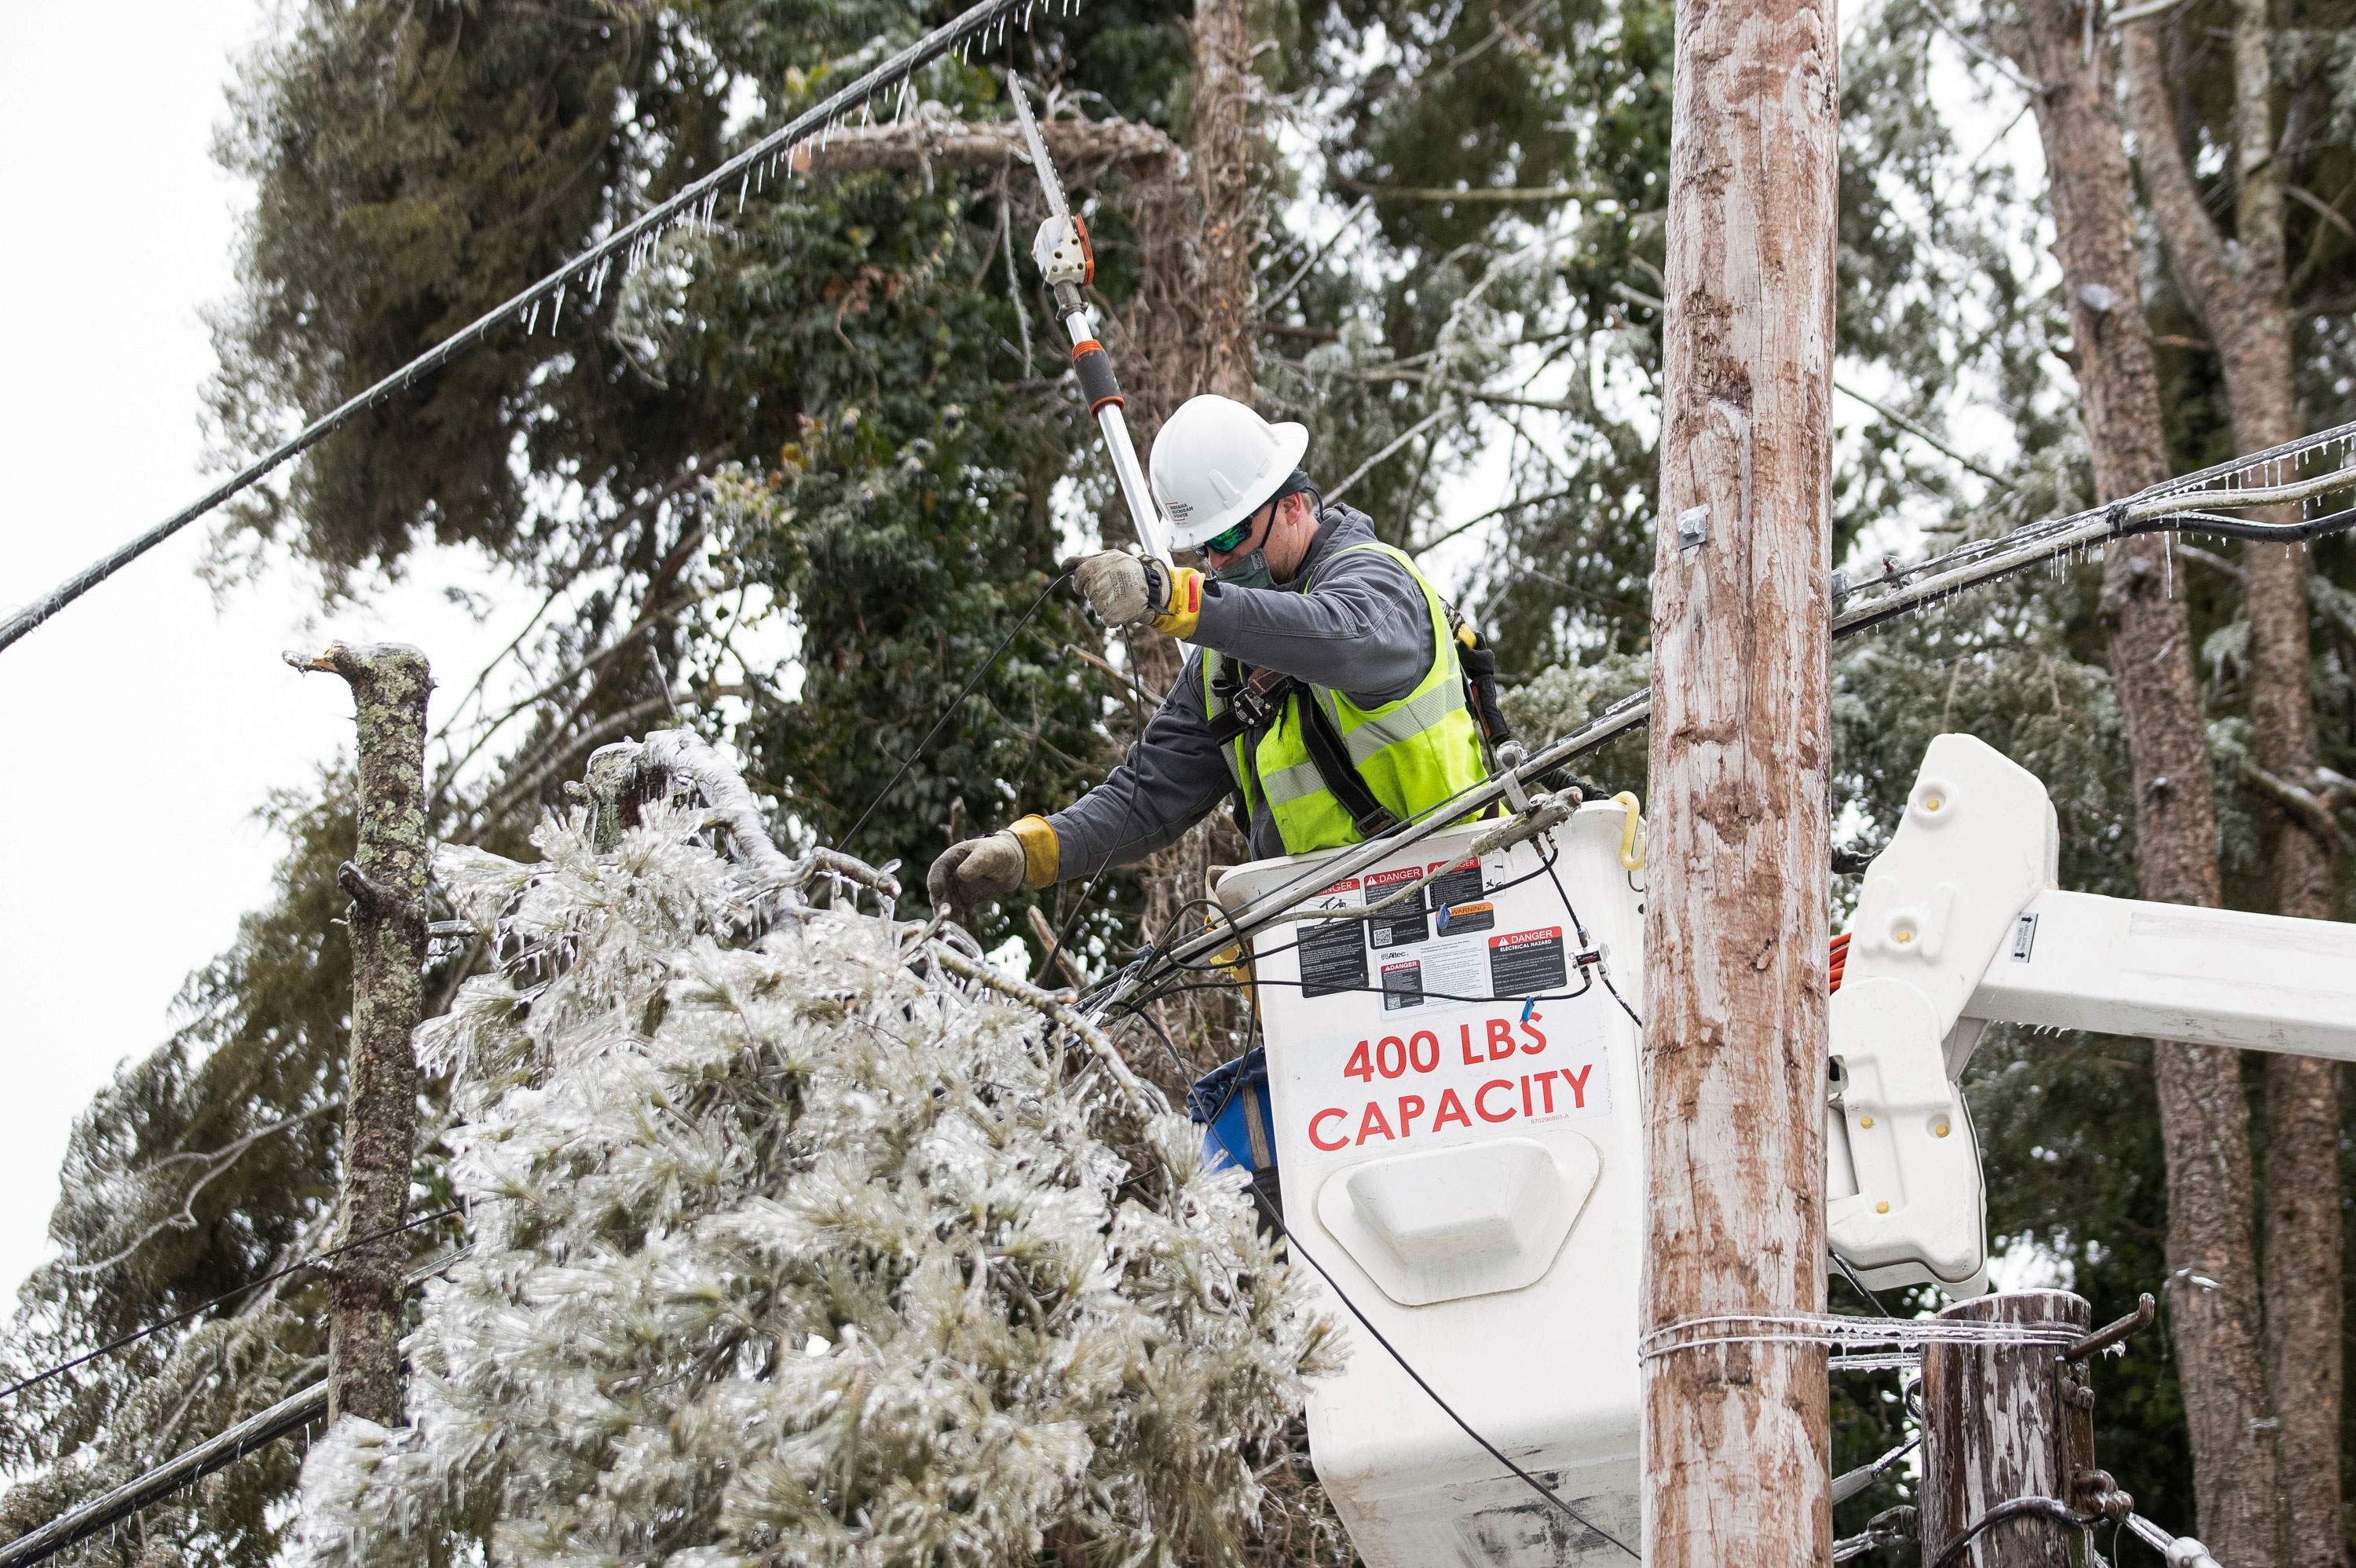 worker cuts tree branches from a power line